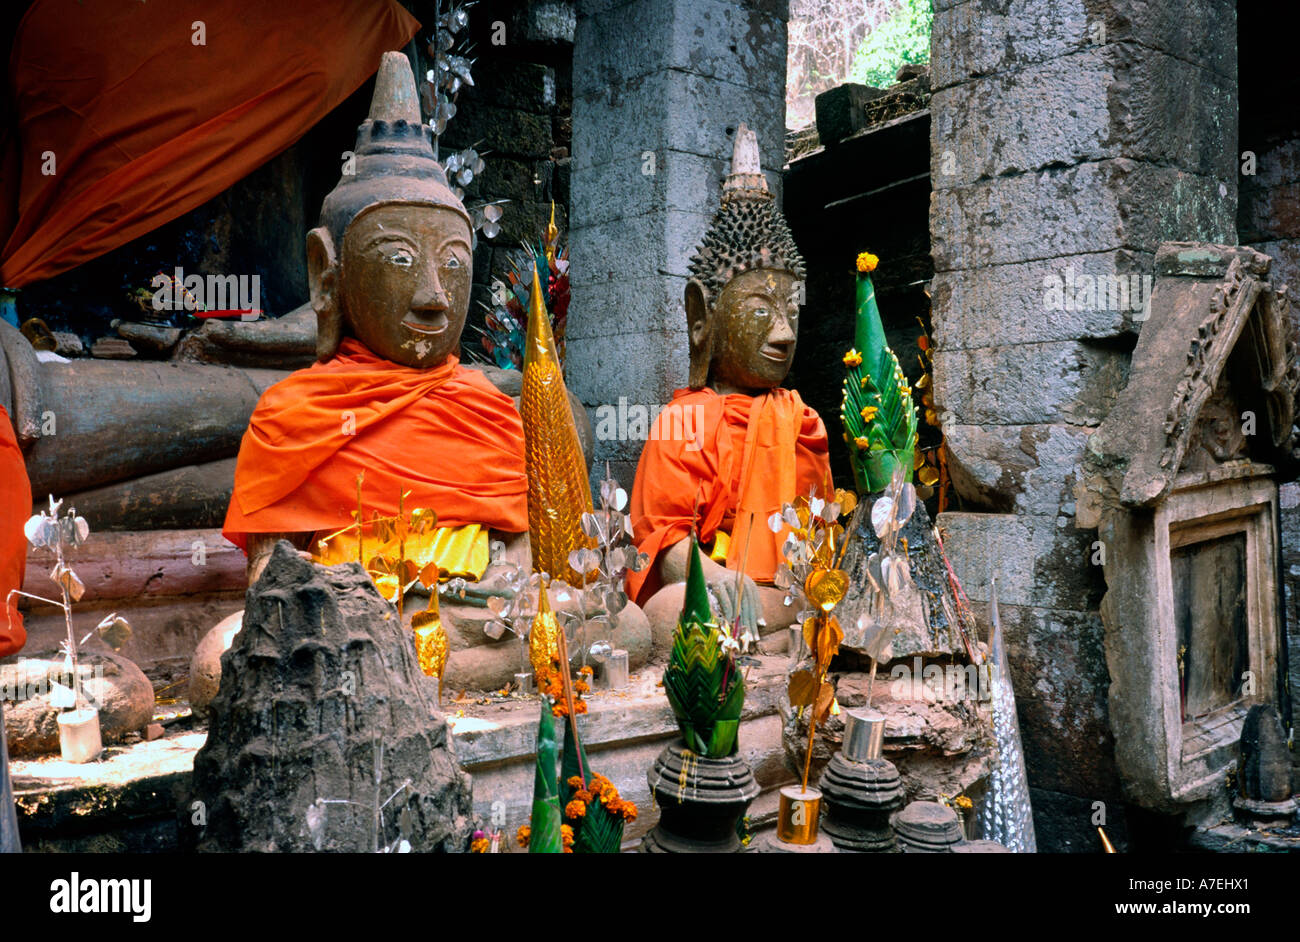 Feb 18, 2003 - Buddhas still dressed up a couple of days after Magha Puja (Full Moon Festival) at Wat Phou in Laos. - Stock Image